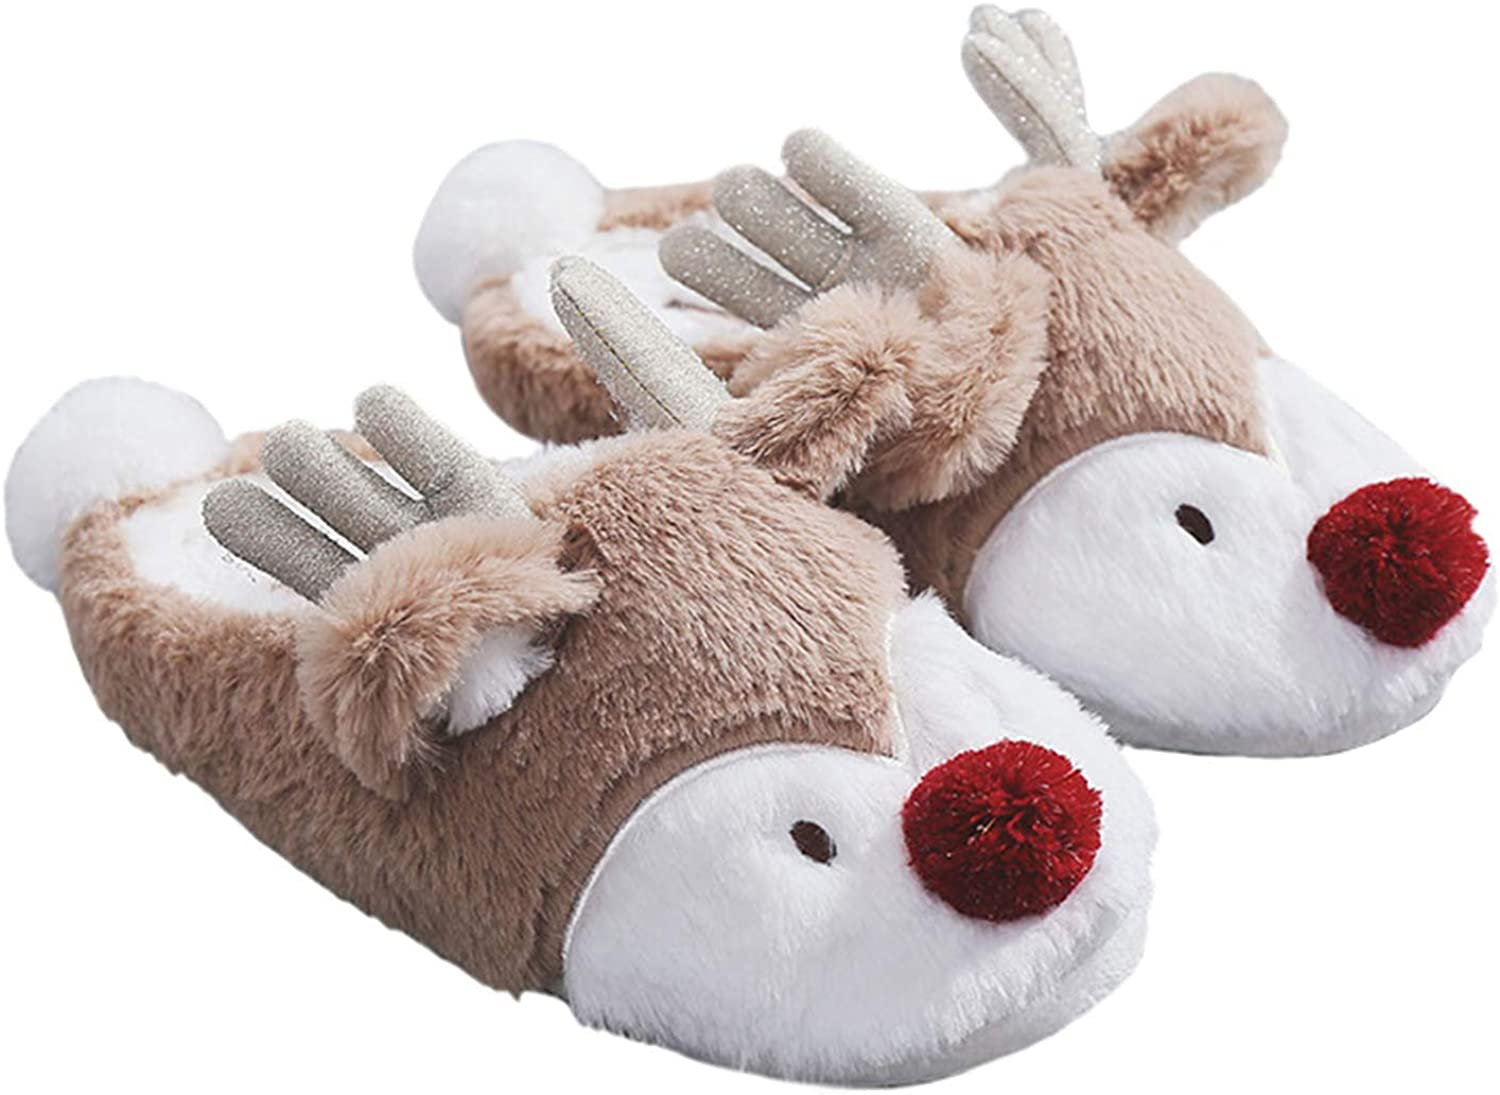 Women's Comfortable Cotton Slipper Winter Warm Anti-Slip Indoor Home shoes Christmas Deer Soft Slippers